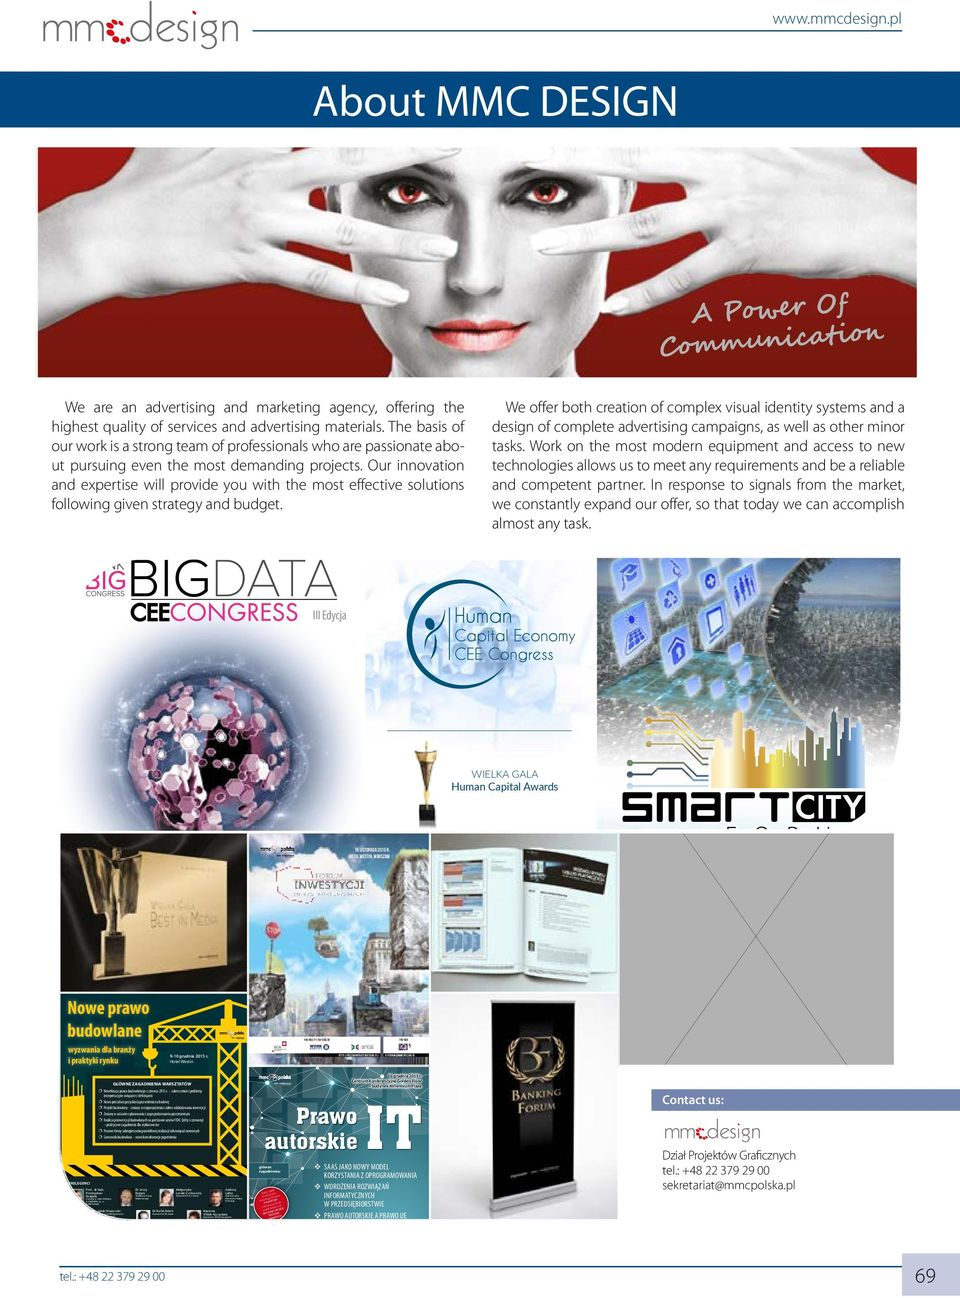 Kancelaria Radcy Prawnego www.mmcdesign.pl About MMC DESIGN We are an advertising and marketing agency, offering the highest quality of services and advertising materials.